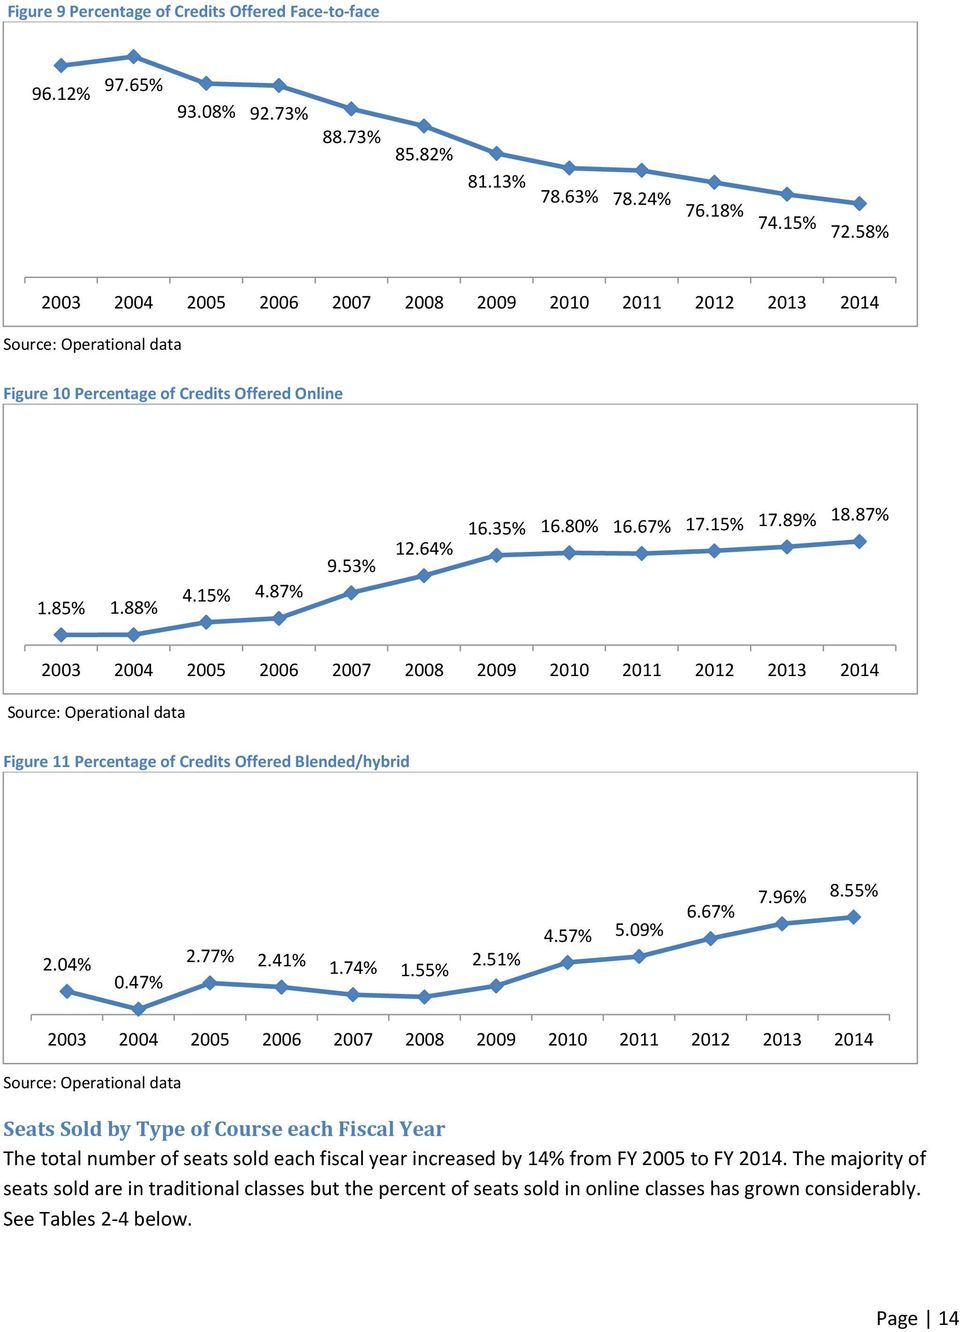 87% 2003 2004 2005 2006 2007 2008 2009 Source: Operational data Figure 11 Percentage of Credits Offered Blended/hybrid 2.04% 0.47% 2.77% 2.41% 1.74% 1.55% 2.51% 4.57% 5.09% 6.67% 7.96% 8.